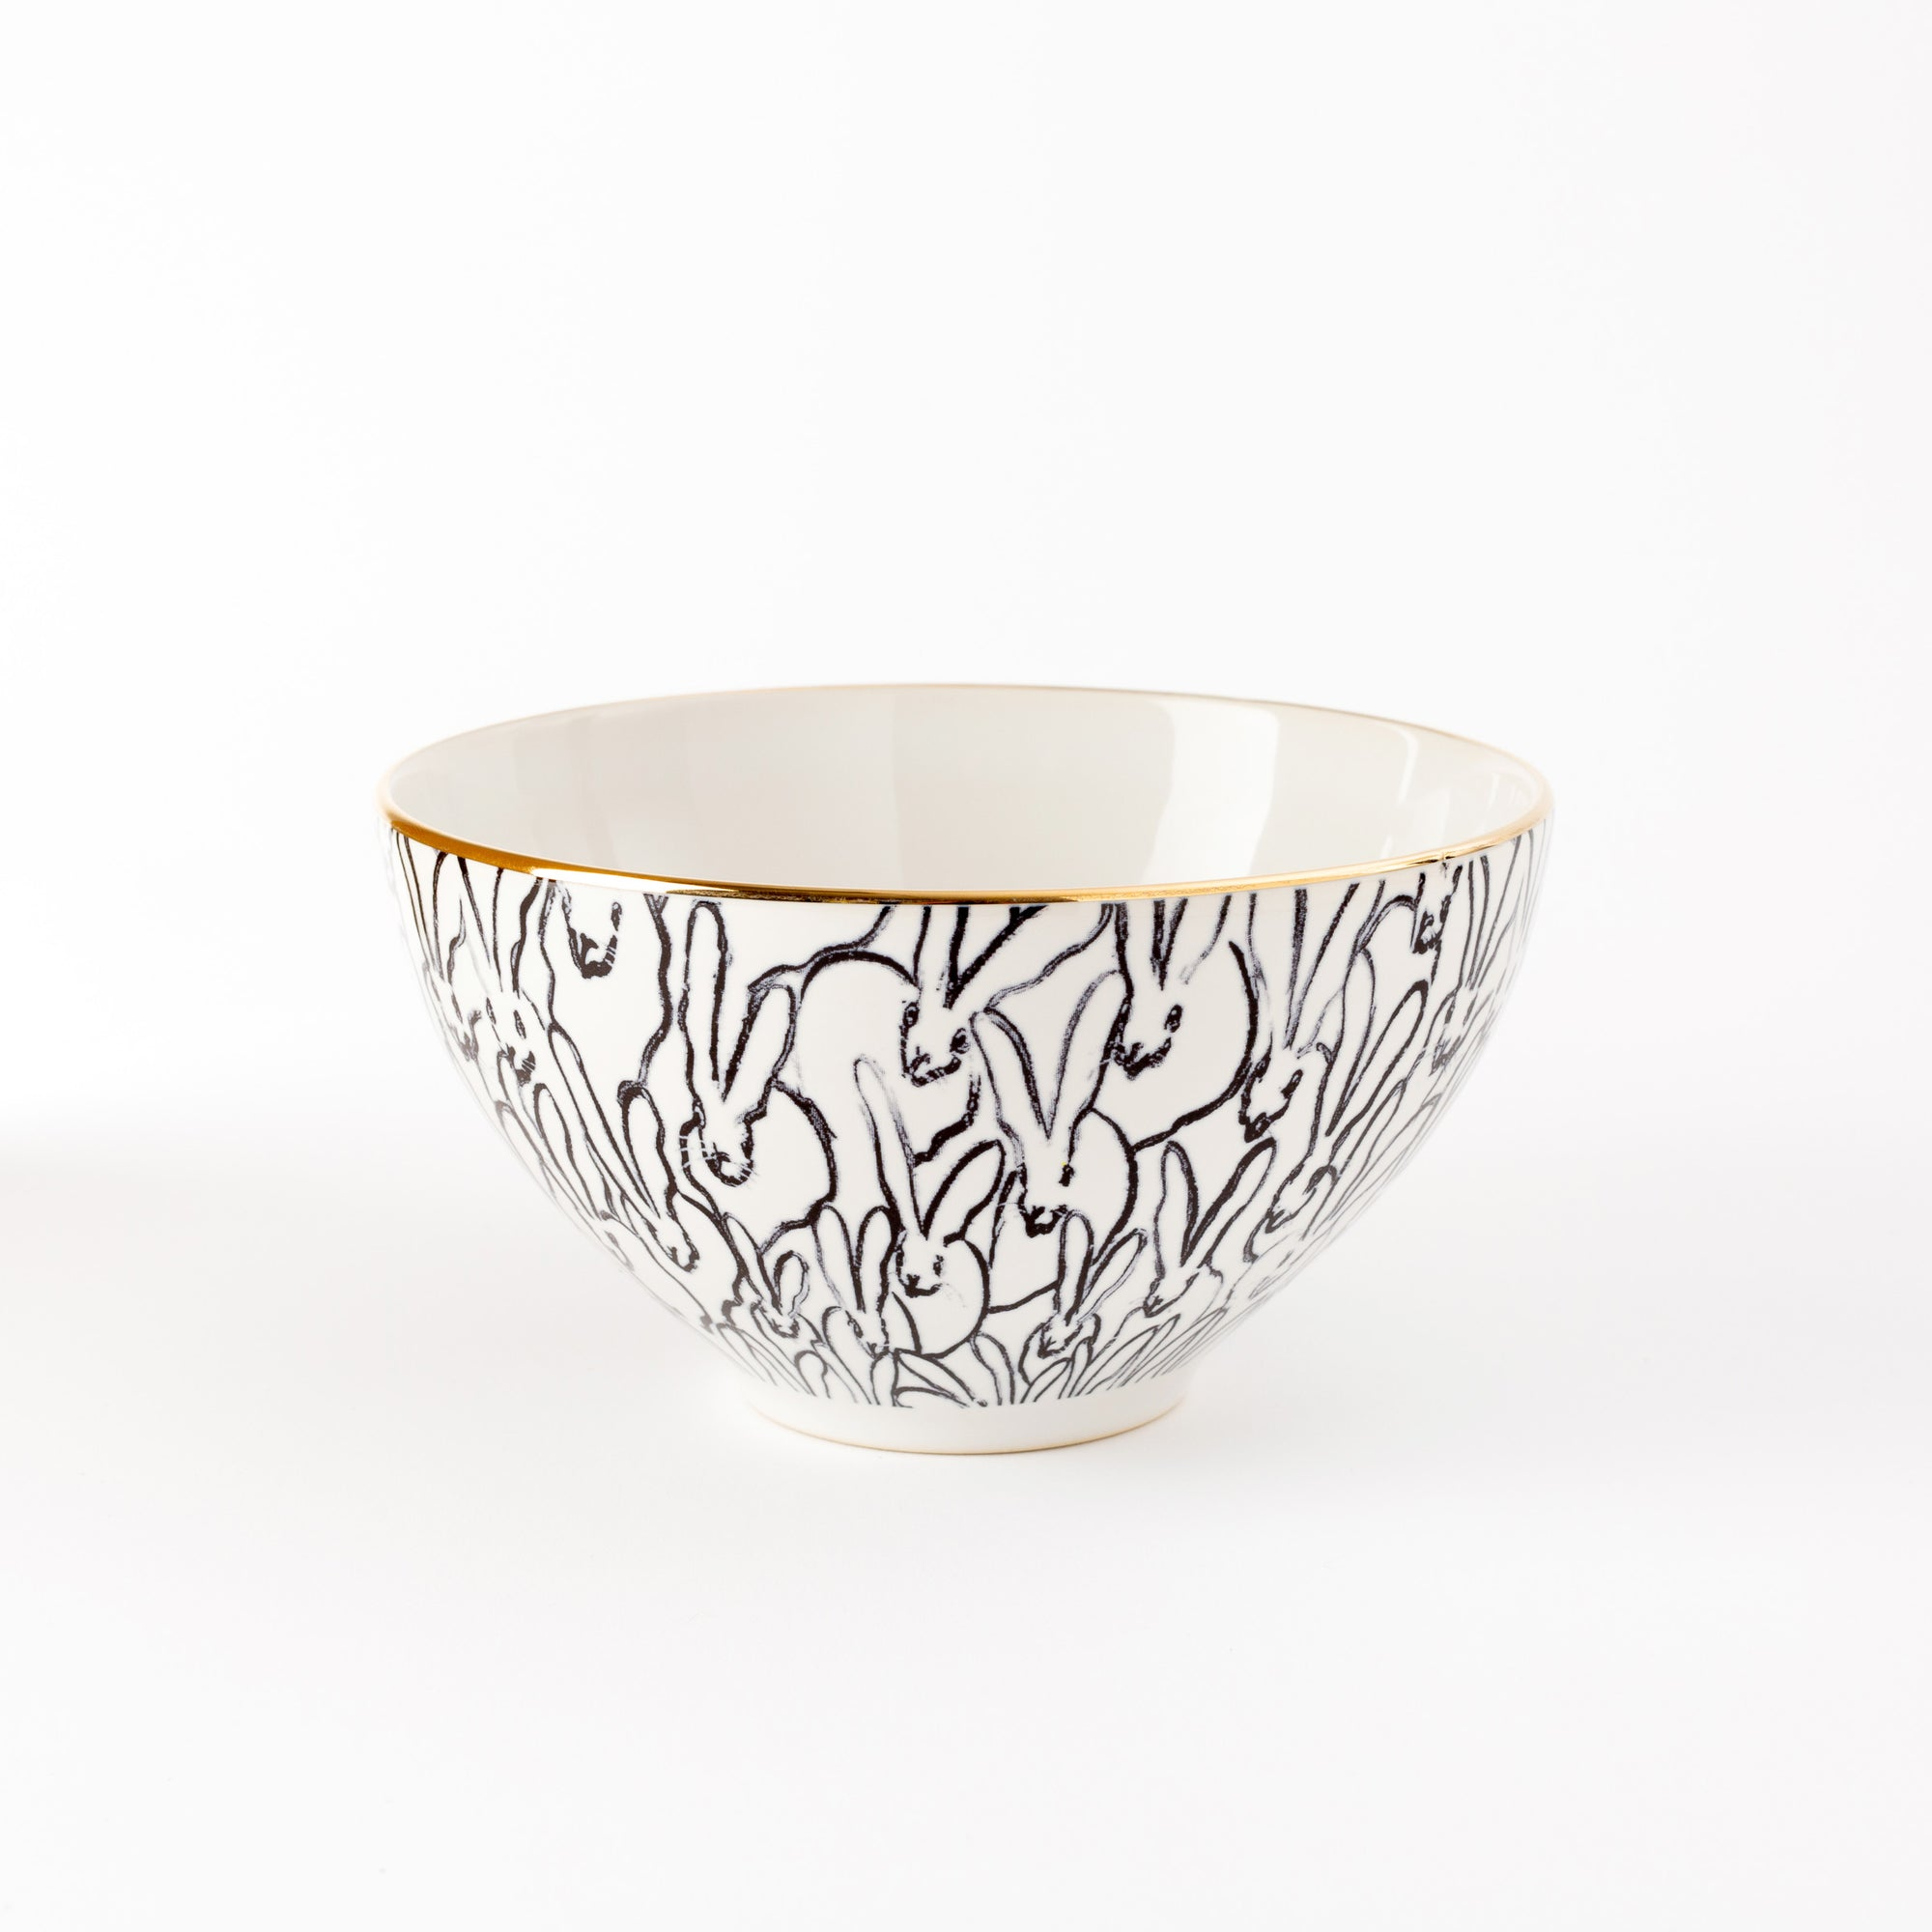 Rabbit Run Cereal Bowl